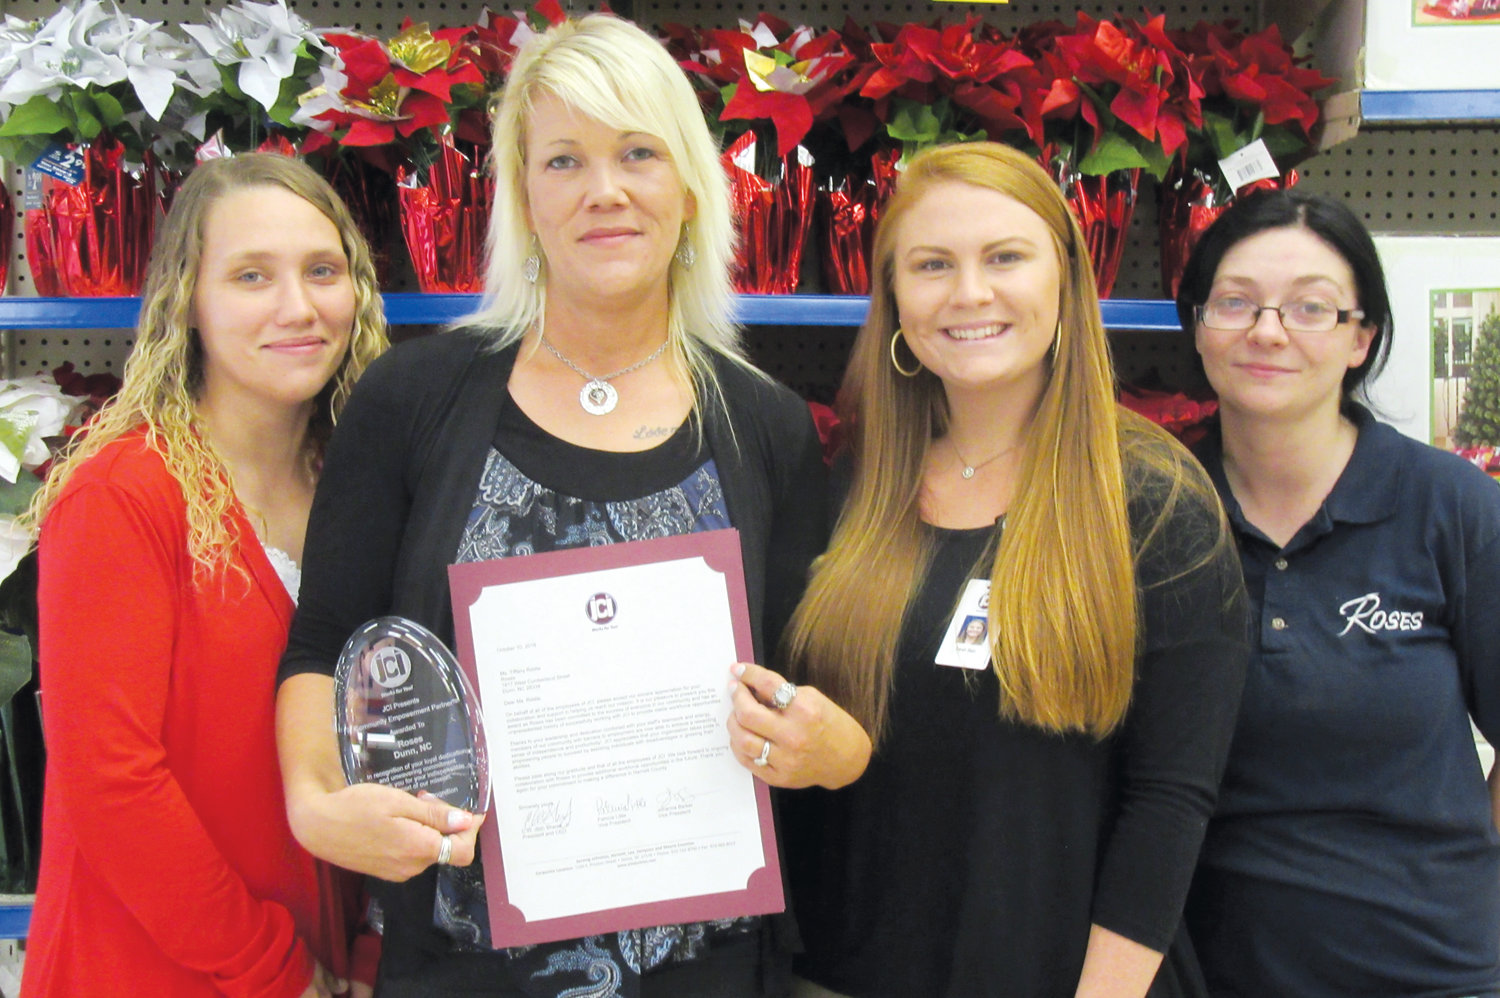 Pictured from left are Dana Brown, Tiffany Riddle, Sarah Bain, JCI Employment Specialist, and Jessica Fish.